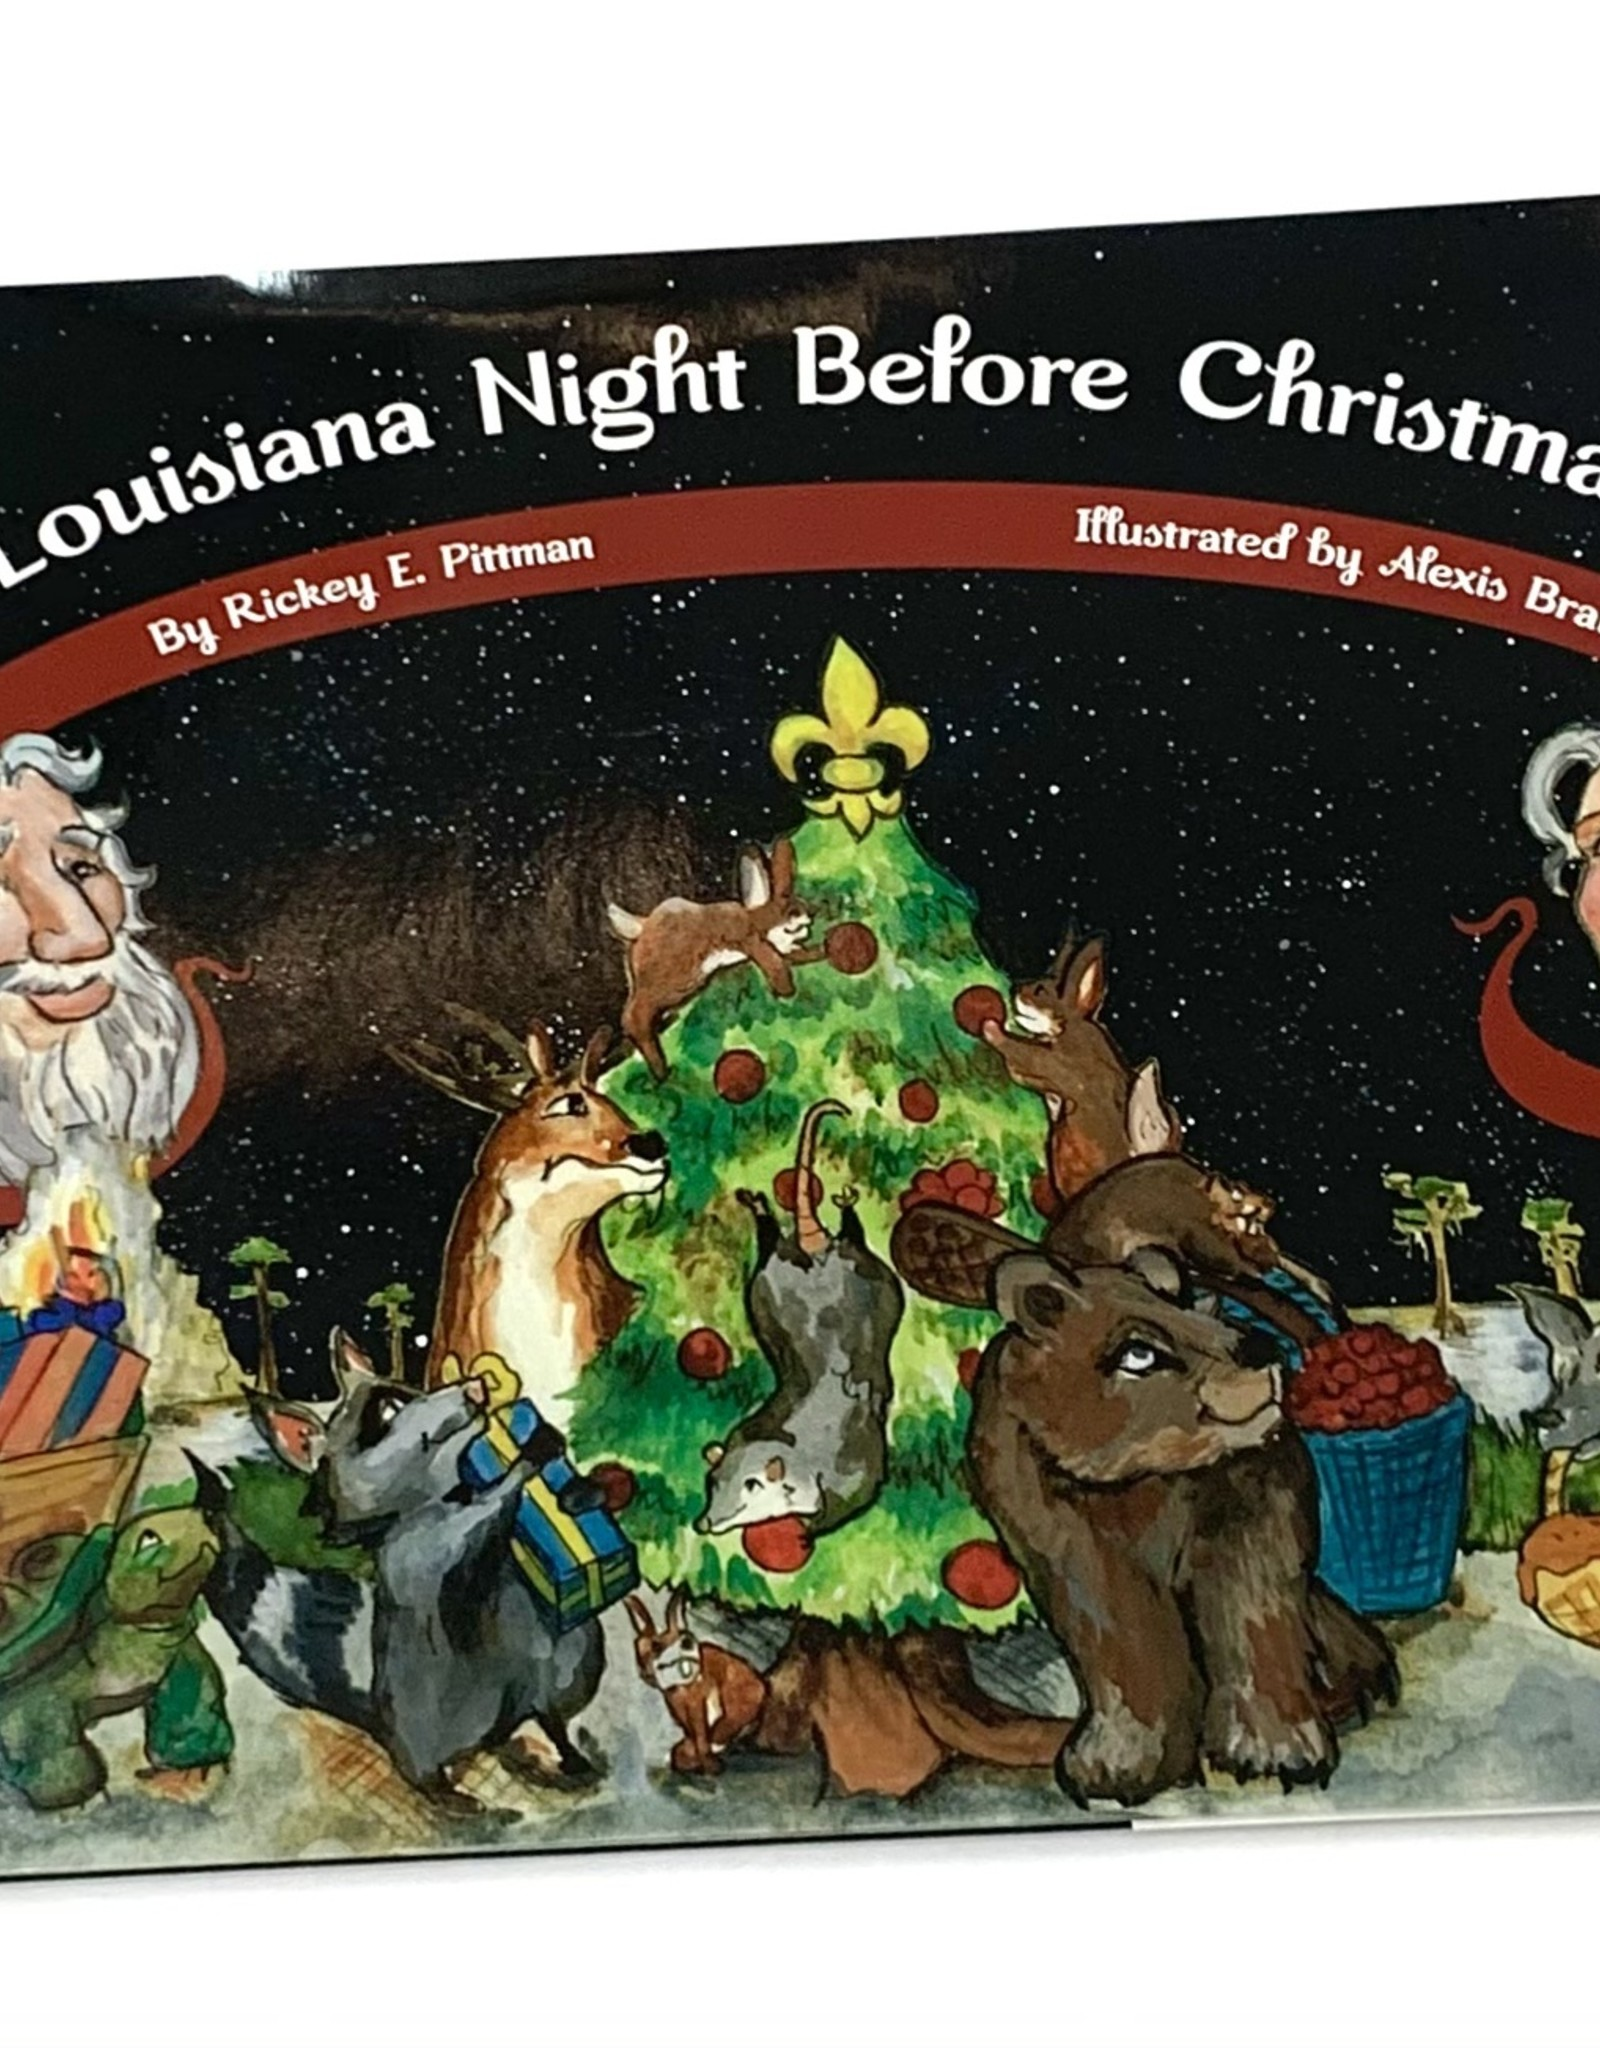 The Printed Press Louisiana Night Before Christmas